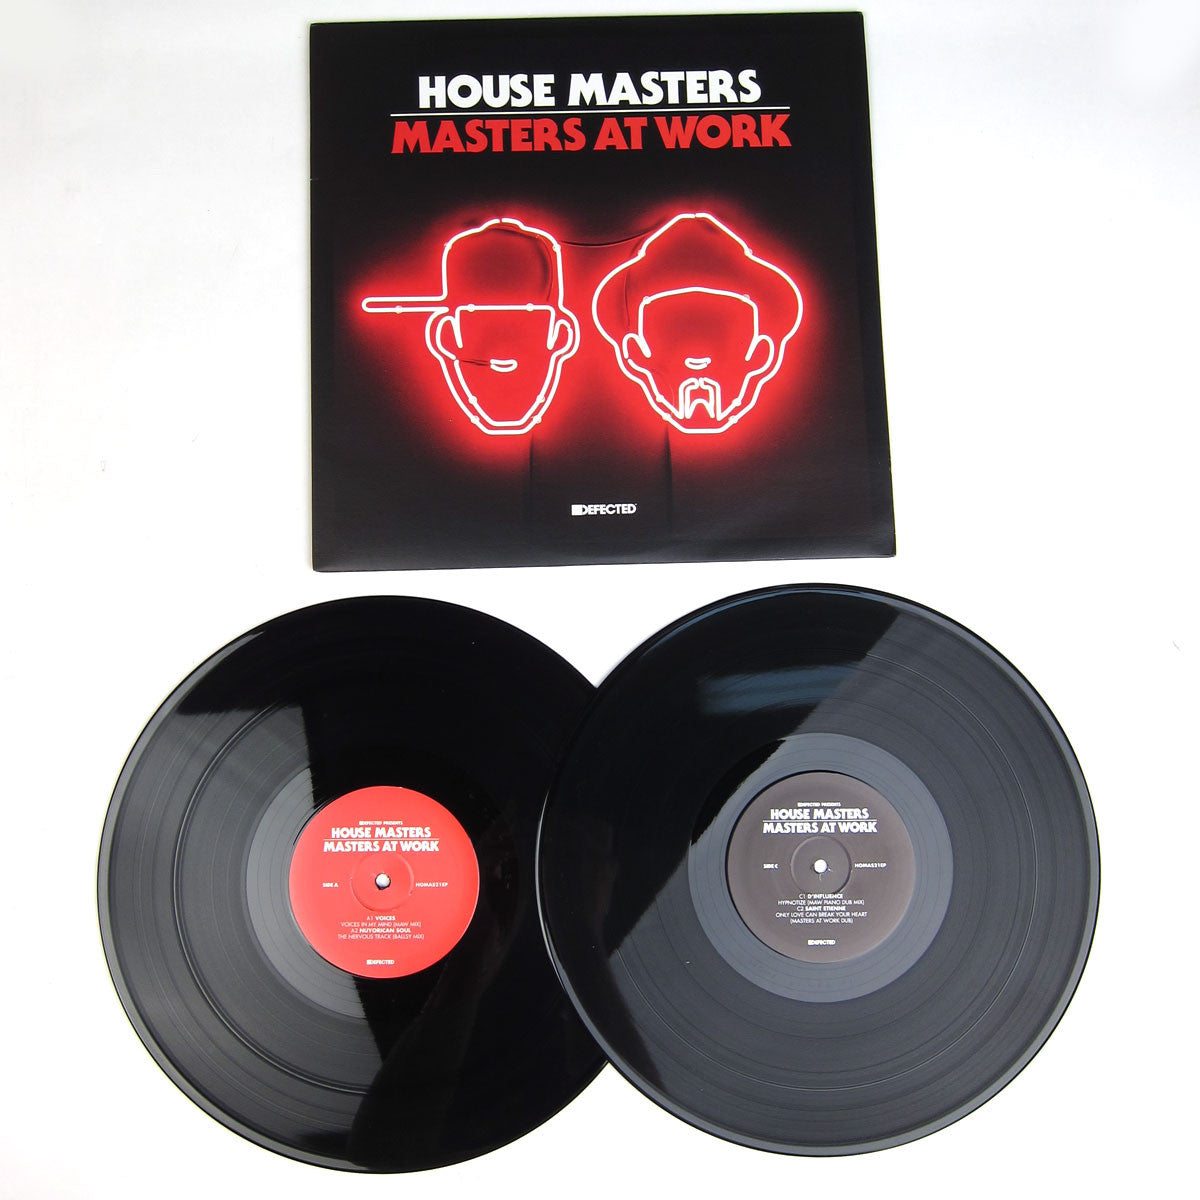 Masters At Work: House Master - Masters At Work Vinyl 2LP detail